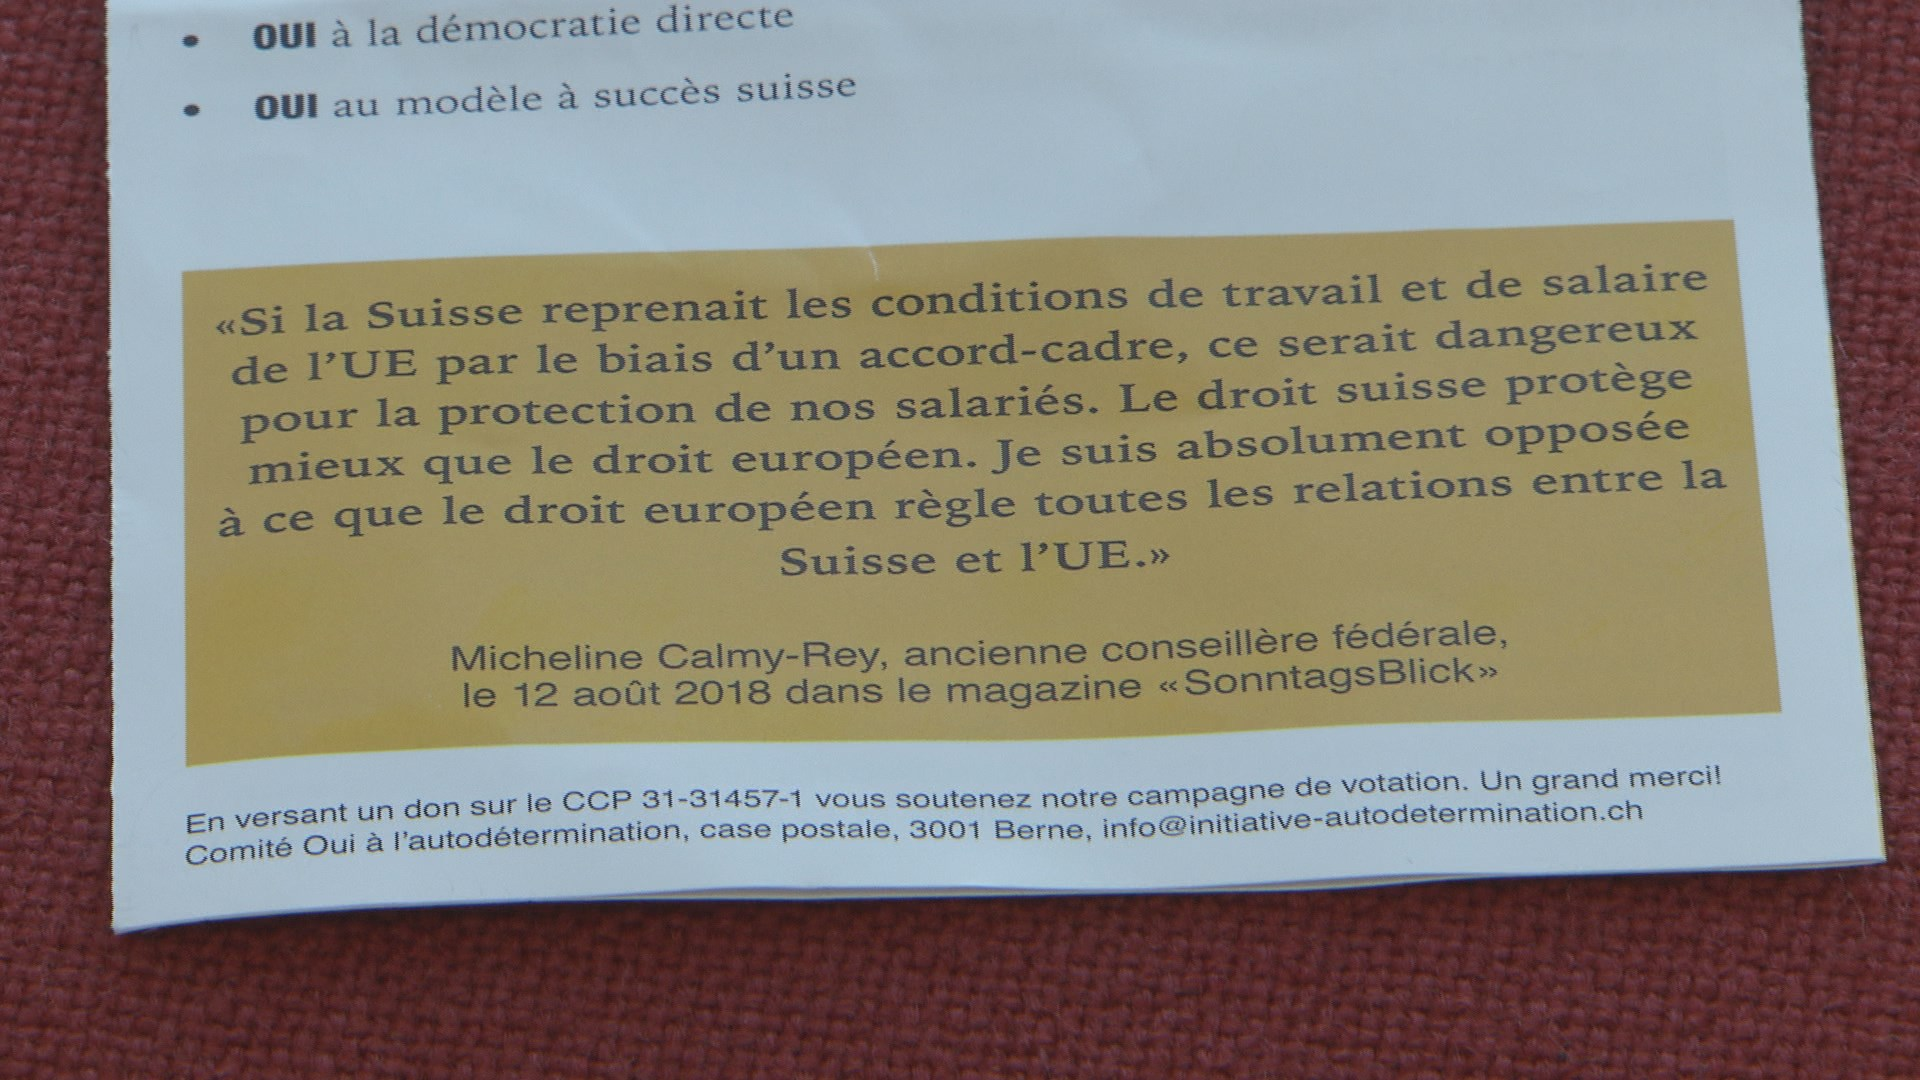 La citation de Micheline Calmy-Rey dans le flyer de l'UDC.